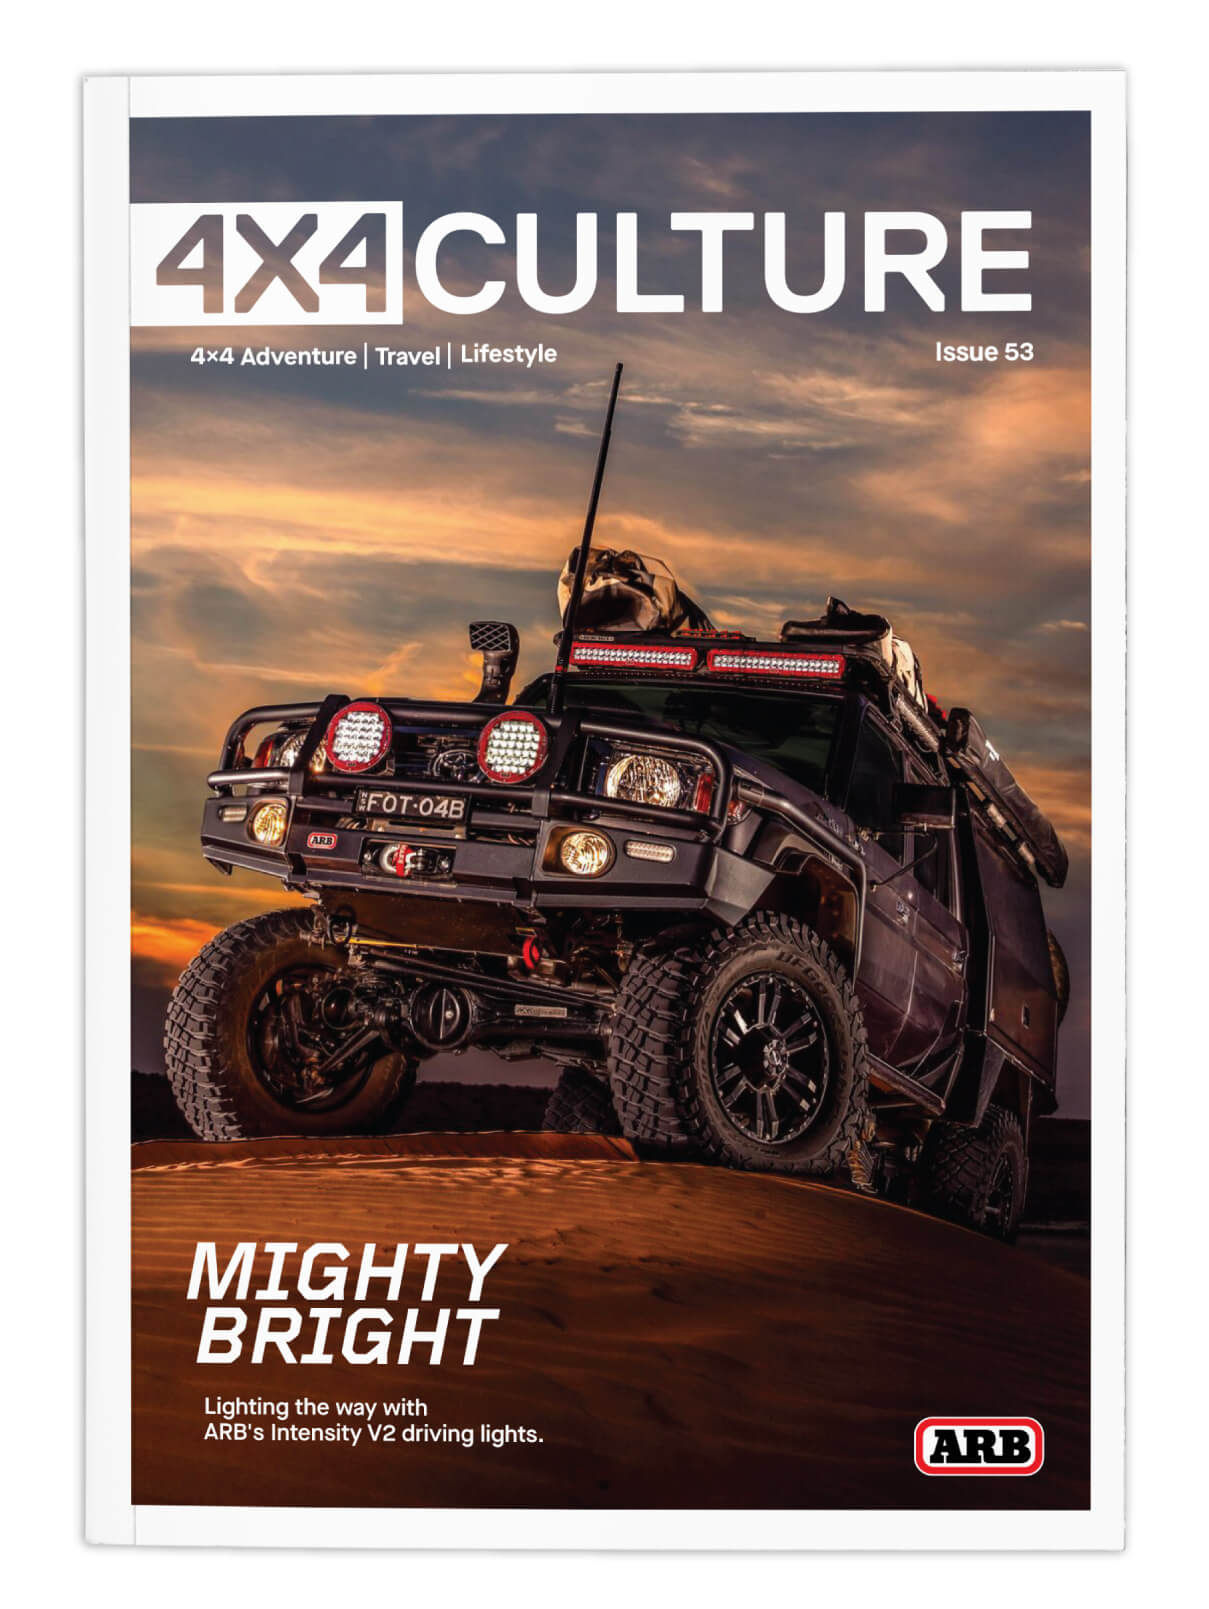 ARB USA | Magazines Archive